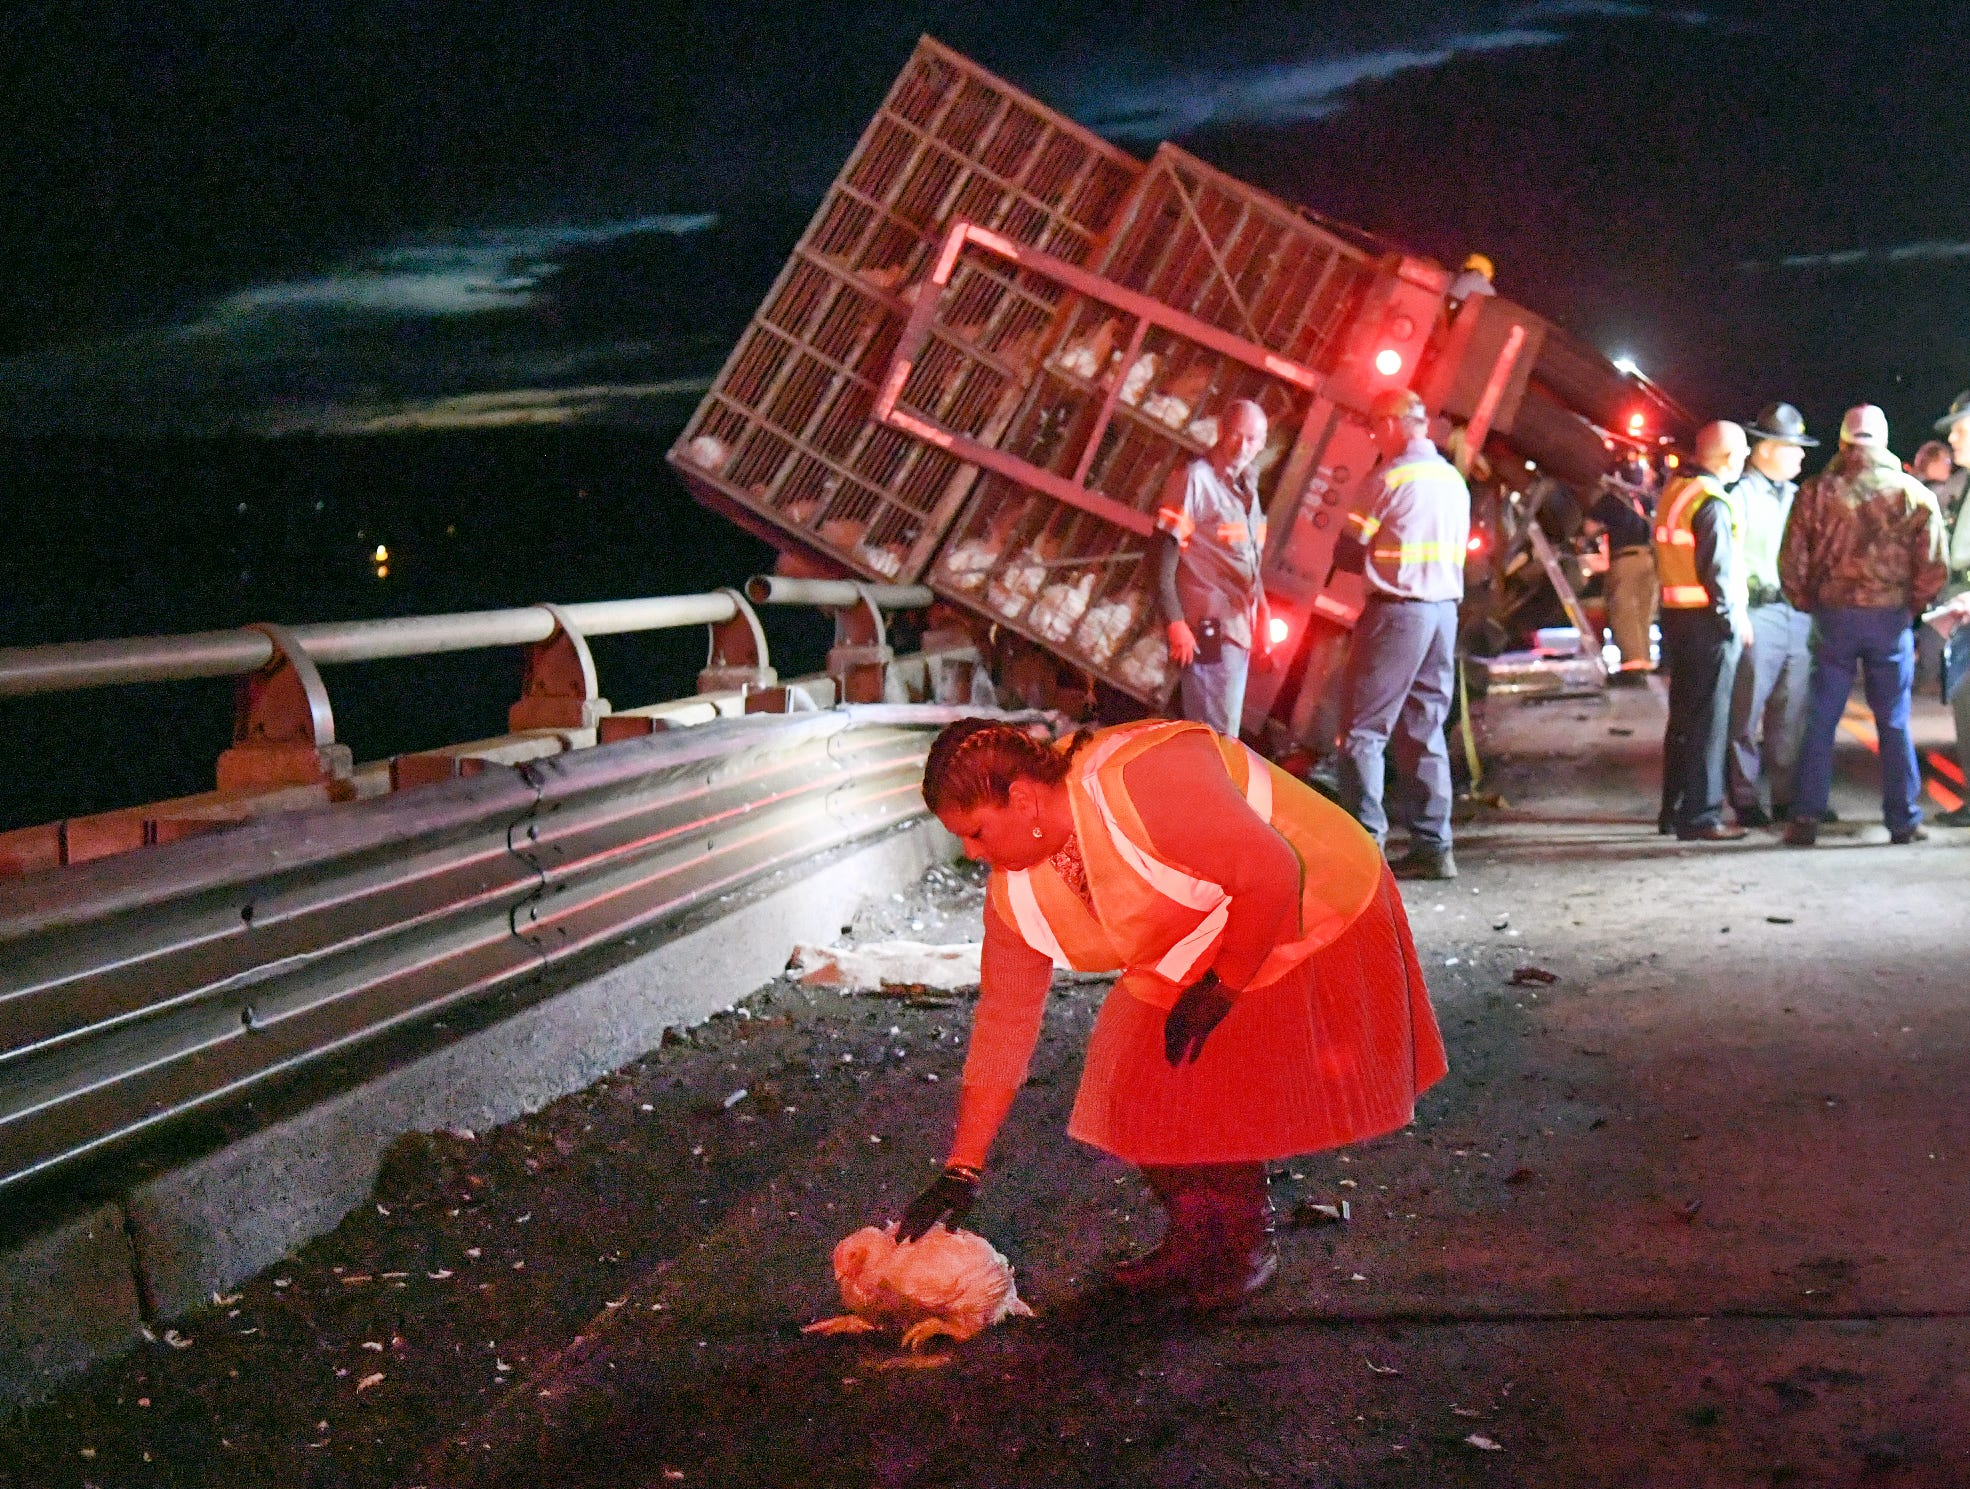 Melissa Huff of Medshore pets the feathers of a live chicken on the State Highway 24 bridge in Anderson on Monday, Feb. 18, 2019. Anderson County firemen, ambulance, and troopers at the scene of a tractor-trailer with cages of chickens and a sedan on a bridge over Lake Hartwell on state highway 24 in Anderson Monday evening. One person died after the Ford Taurus collided with an tractor-trailer.